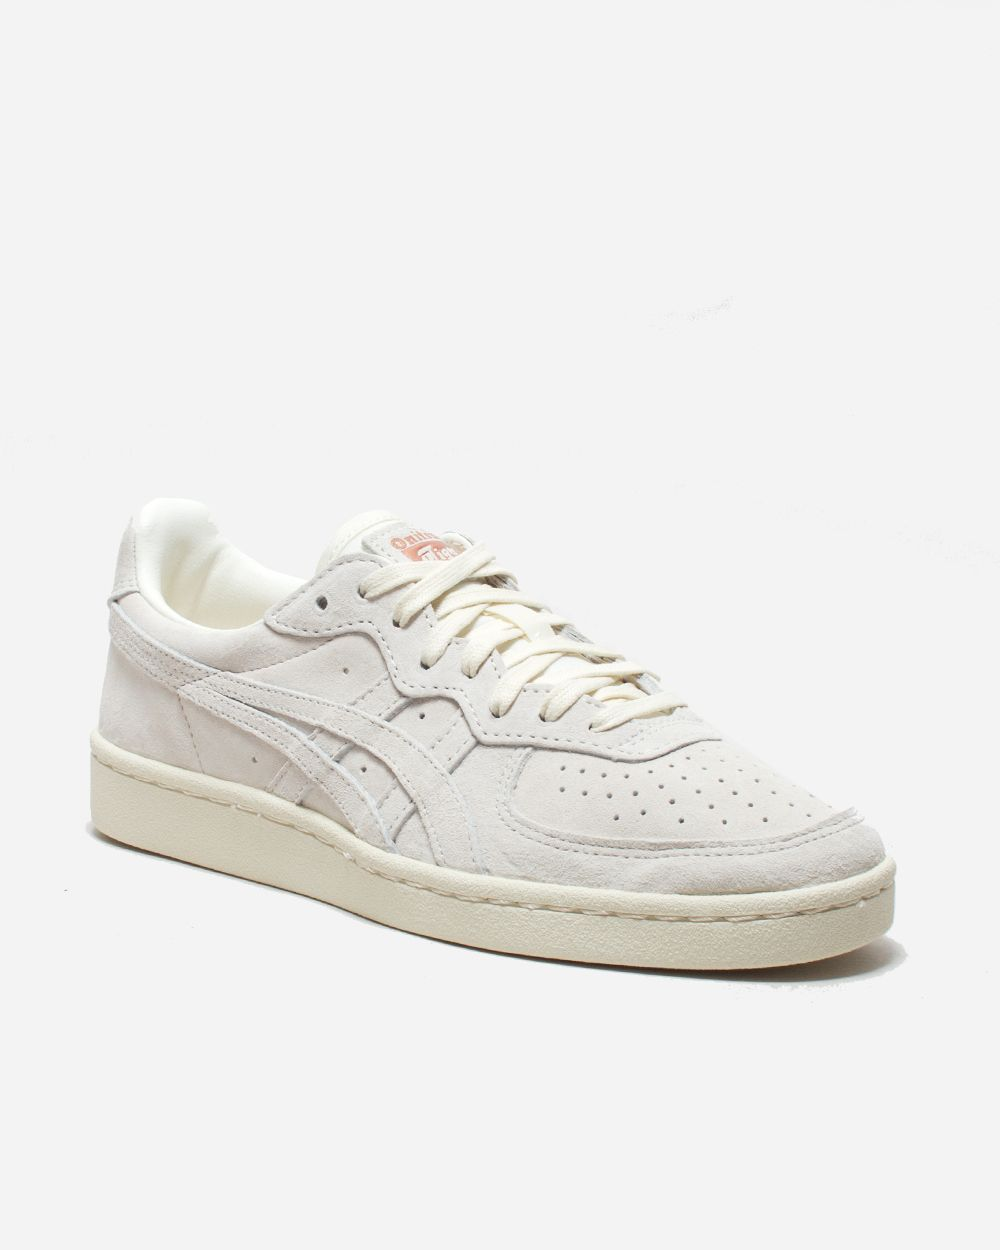 Naked - Supplying girls with sneakers - Onitsuka Tiger GSM D5K1L 0101